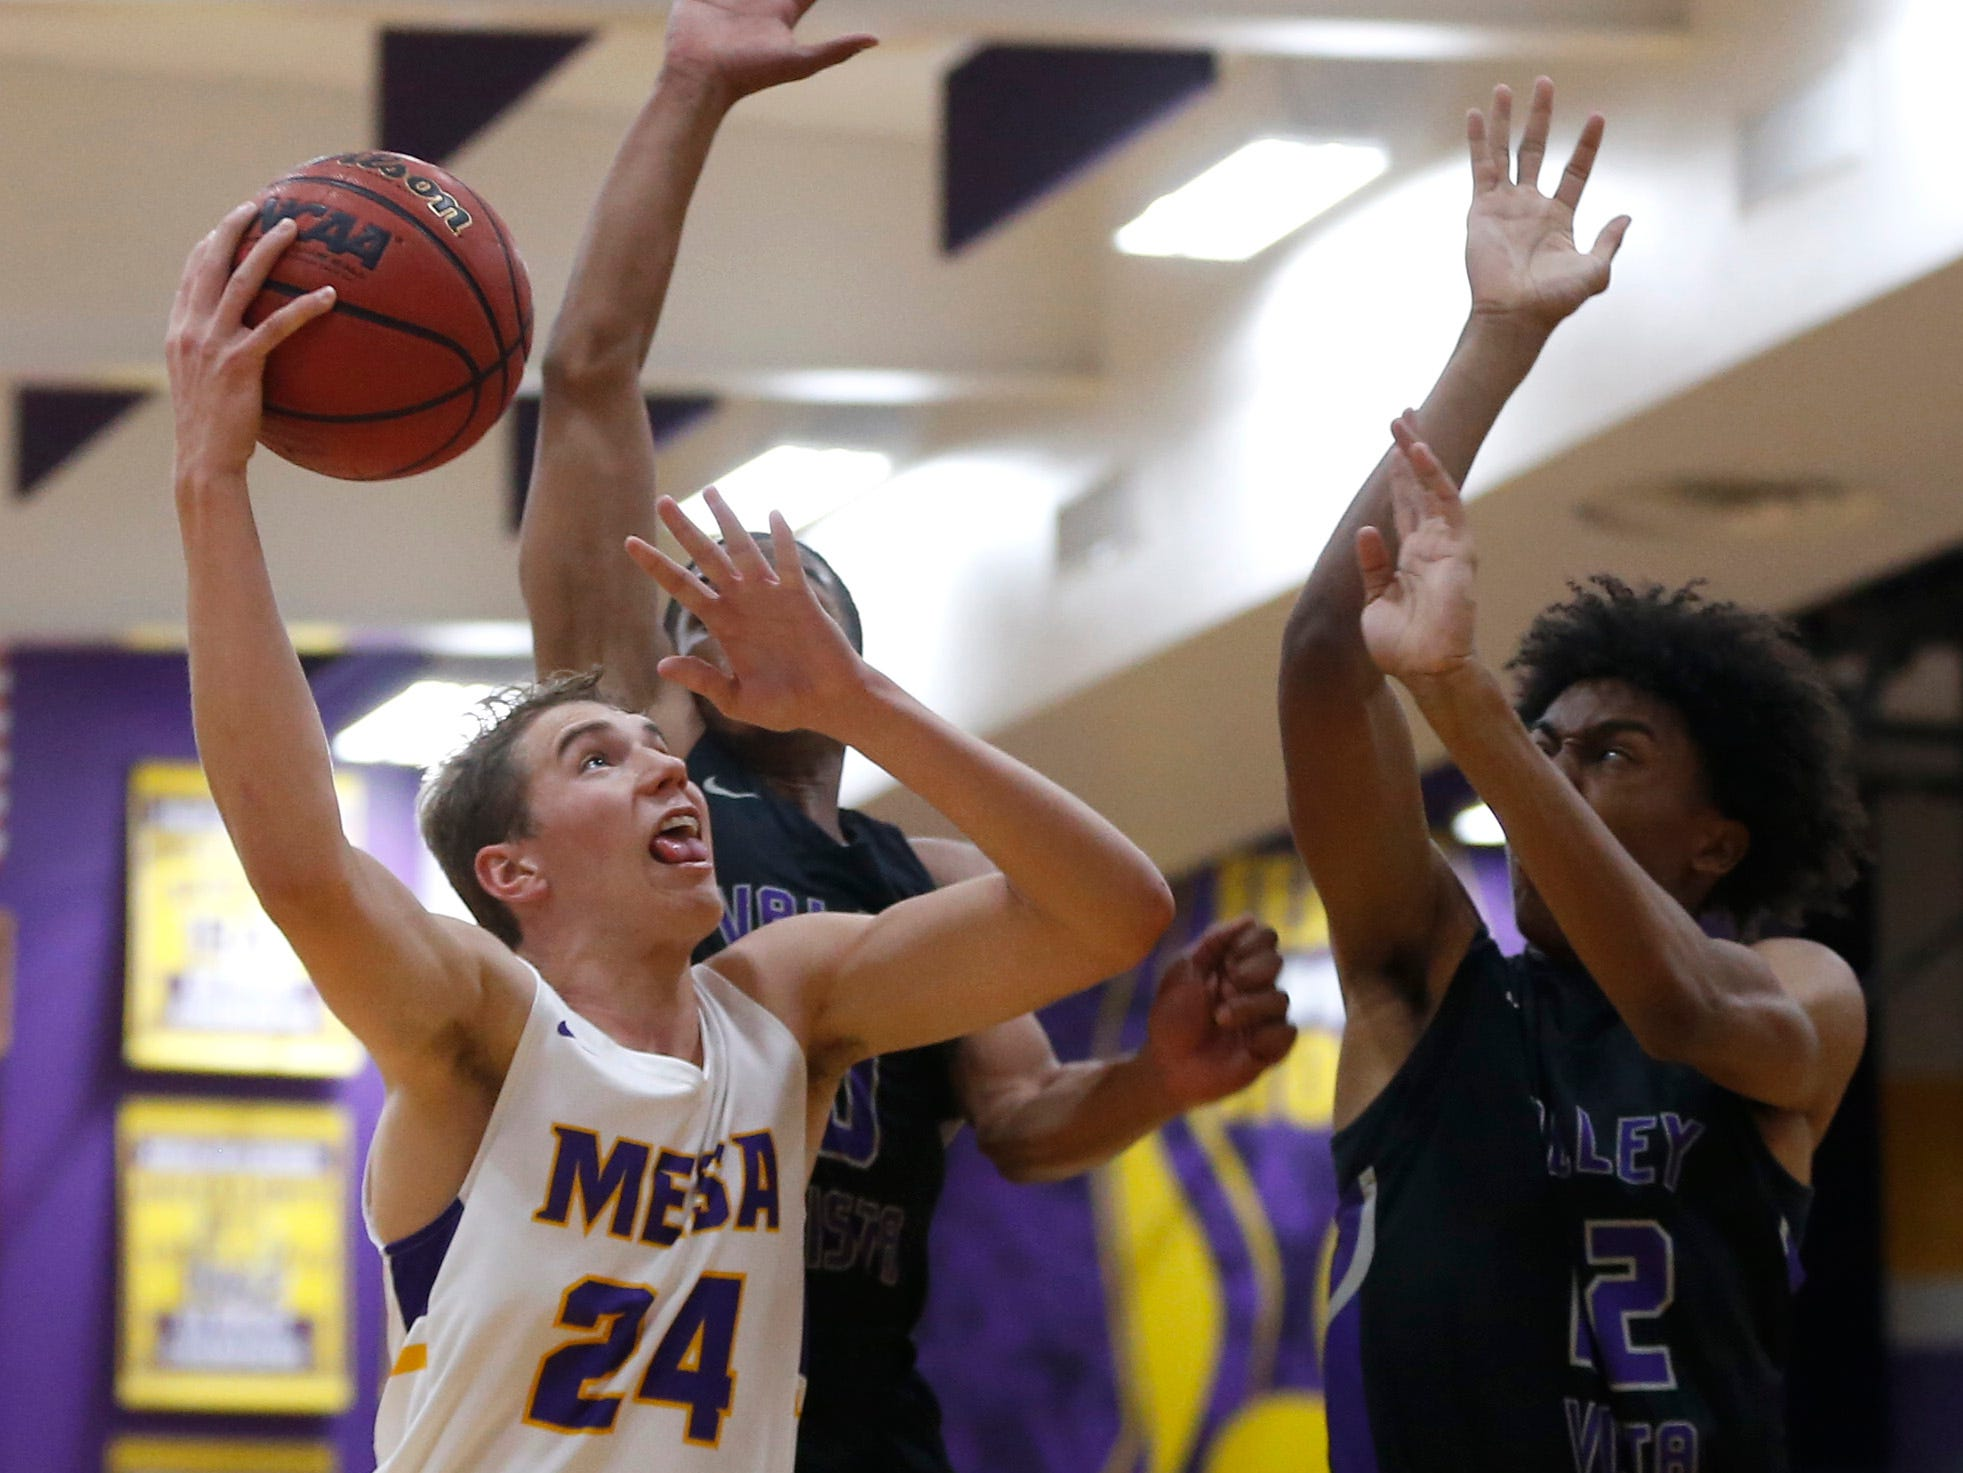 Mesa's Zach Hobbs (24) shoots against Valley Vista's Curtis Nichols (22) during the first half of the boys basketball tournament play-in game at Mesa High School in Mesa, Ariz. on February 8, 2019.